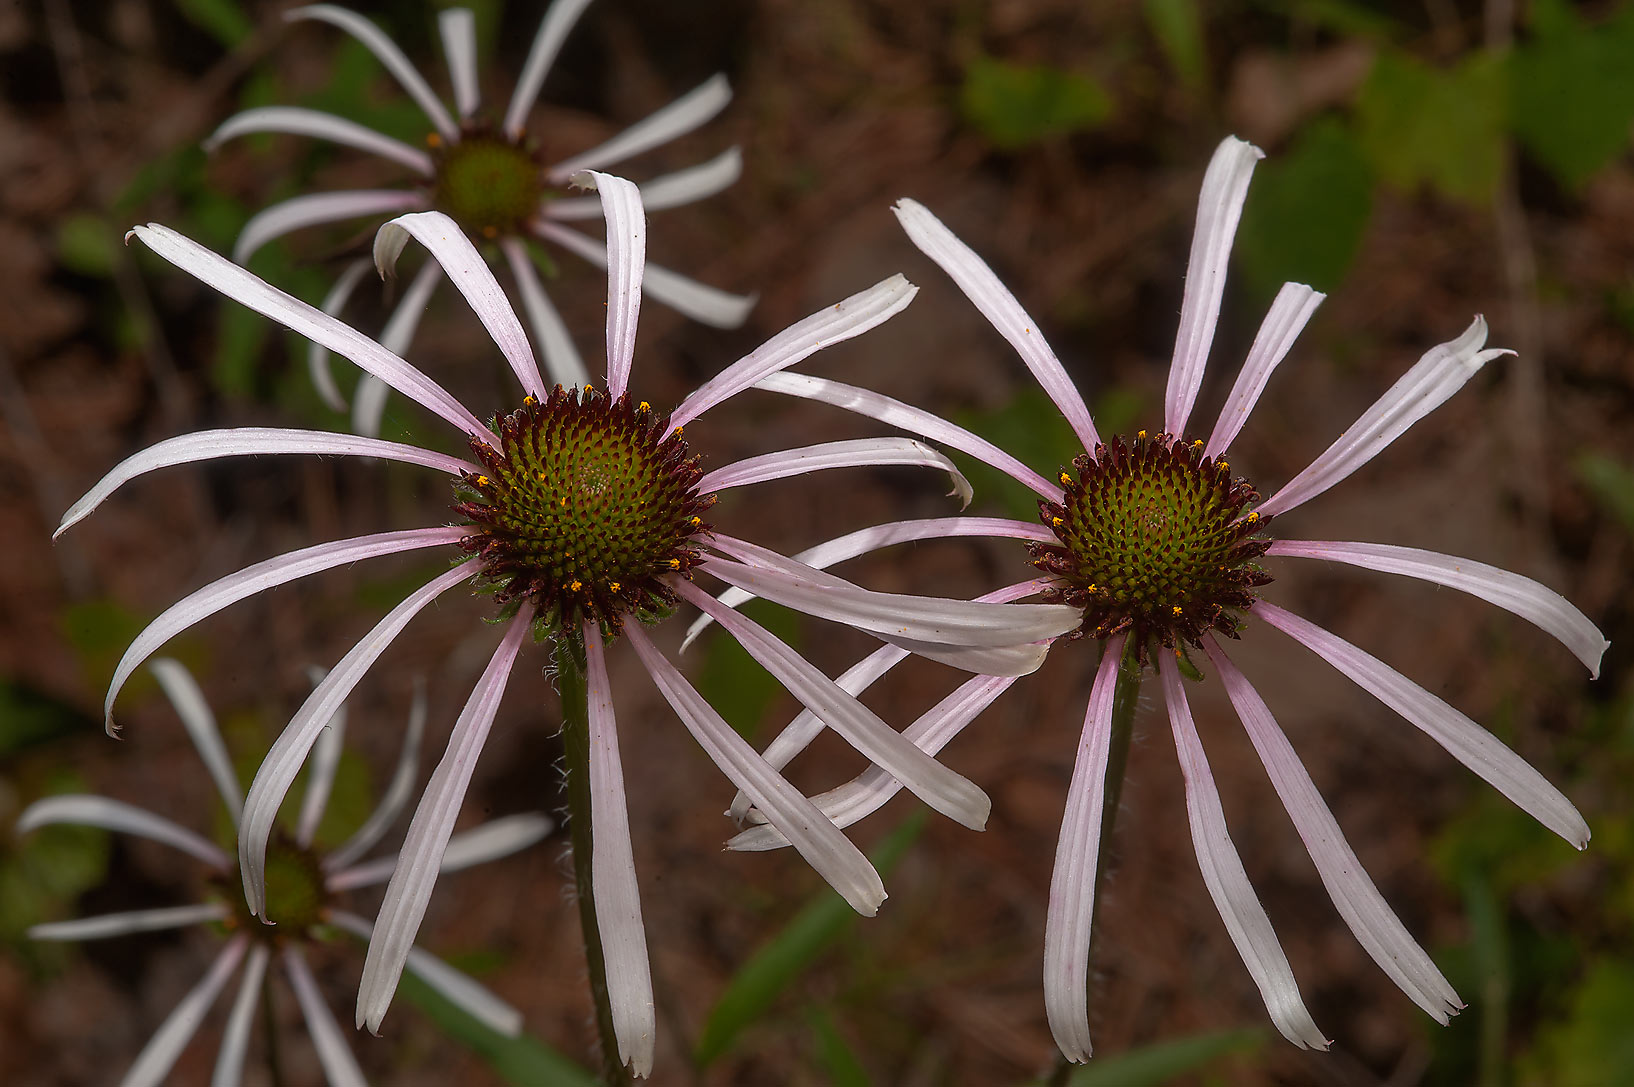 Blooming coneflowers (Echinacea sanguinea) in Sam...Lake Creek Loop Trail. Richards, Texas